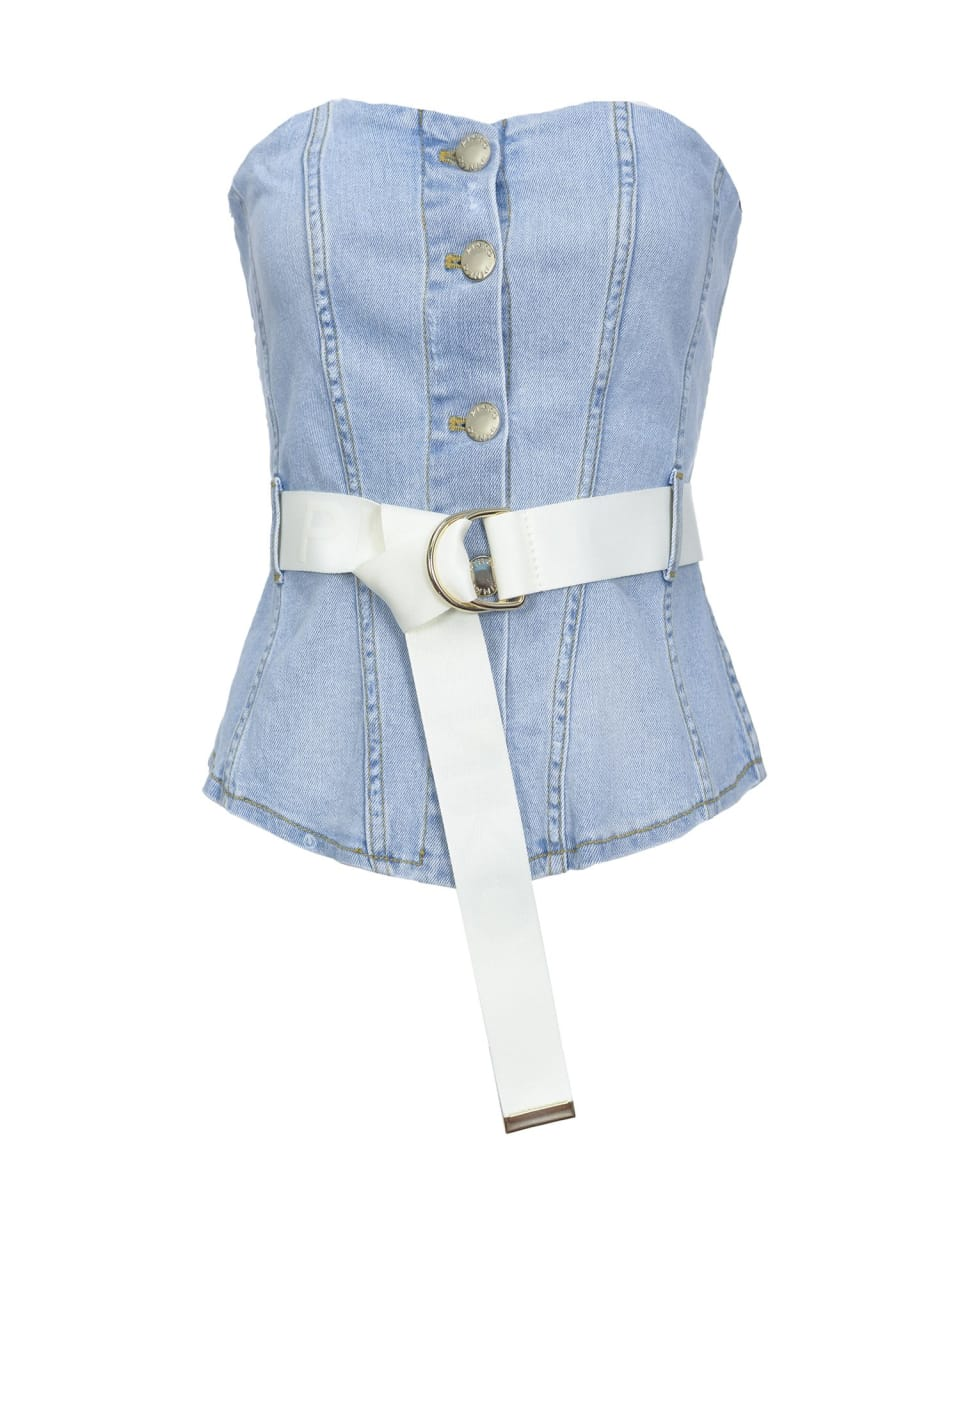 Top bustier de comfort-denim